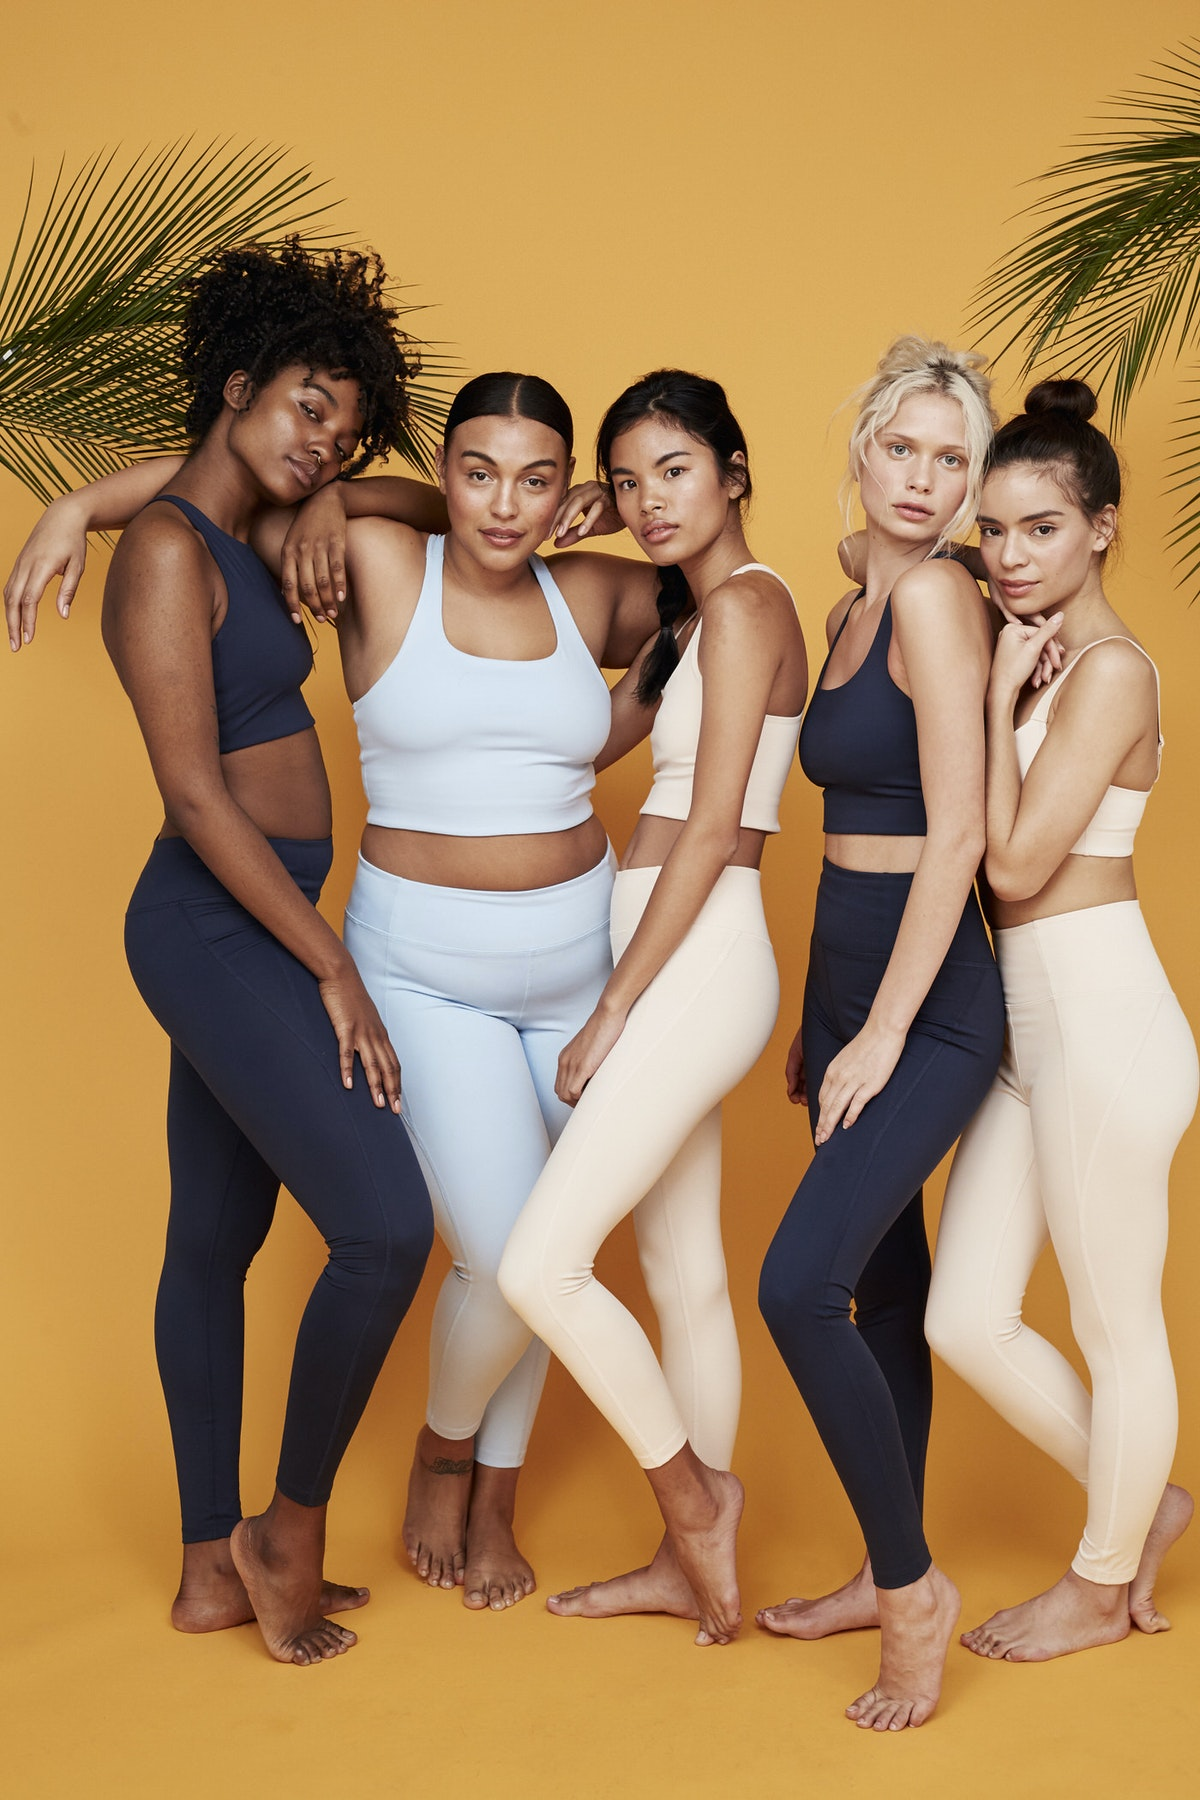 0497b77e32 As if ethically manufactured, sustainable, eco-friendly activewear made  from recycled water bottles wasn't enough, Girlfriend Collective has  elevated all ...